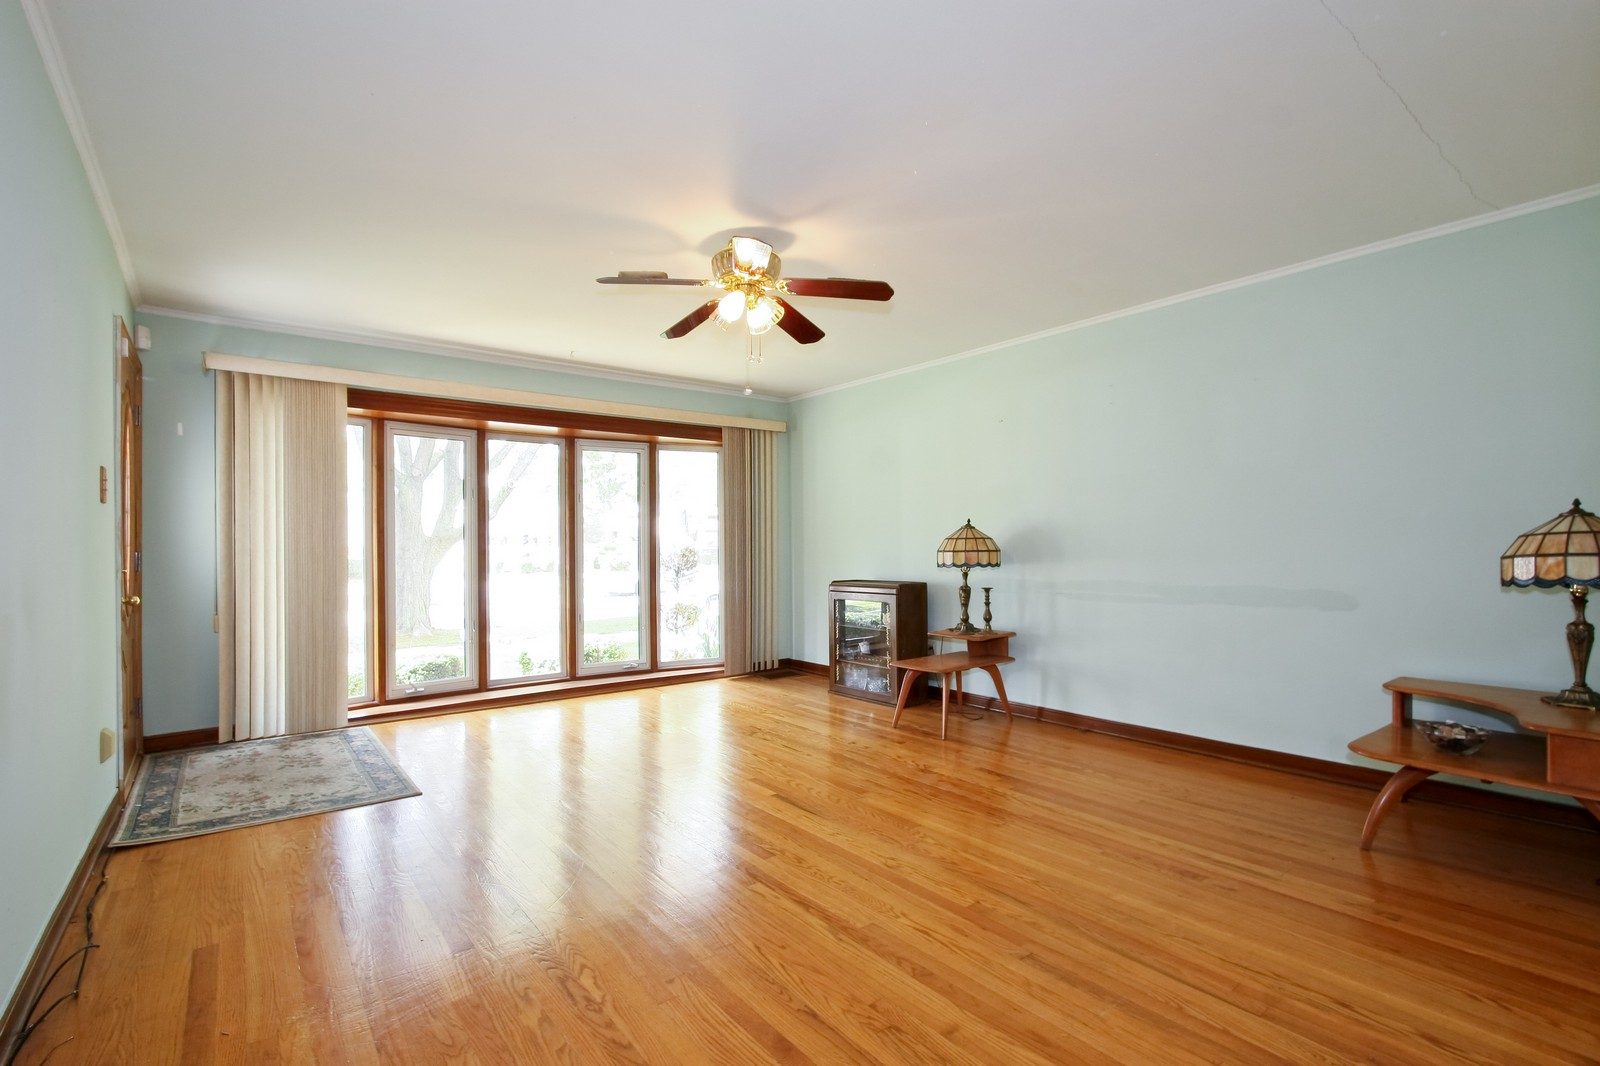 Real Estate Photography - 5813 S Natoma, Chicago, IL, 60638 - Living Room